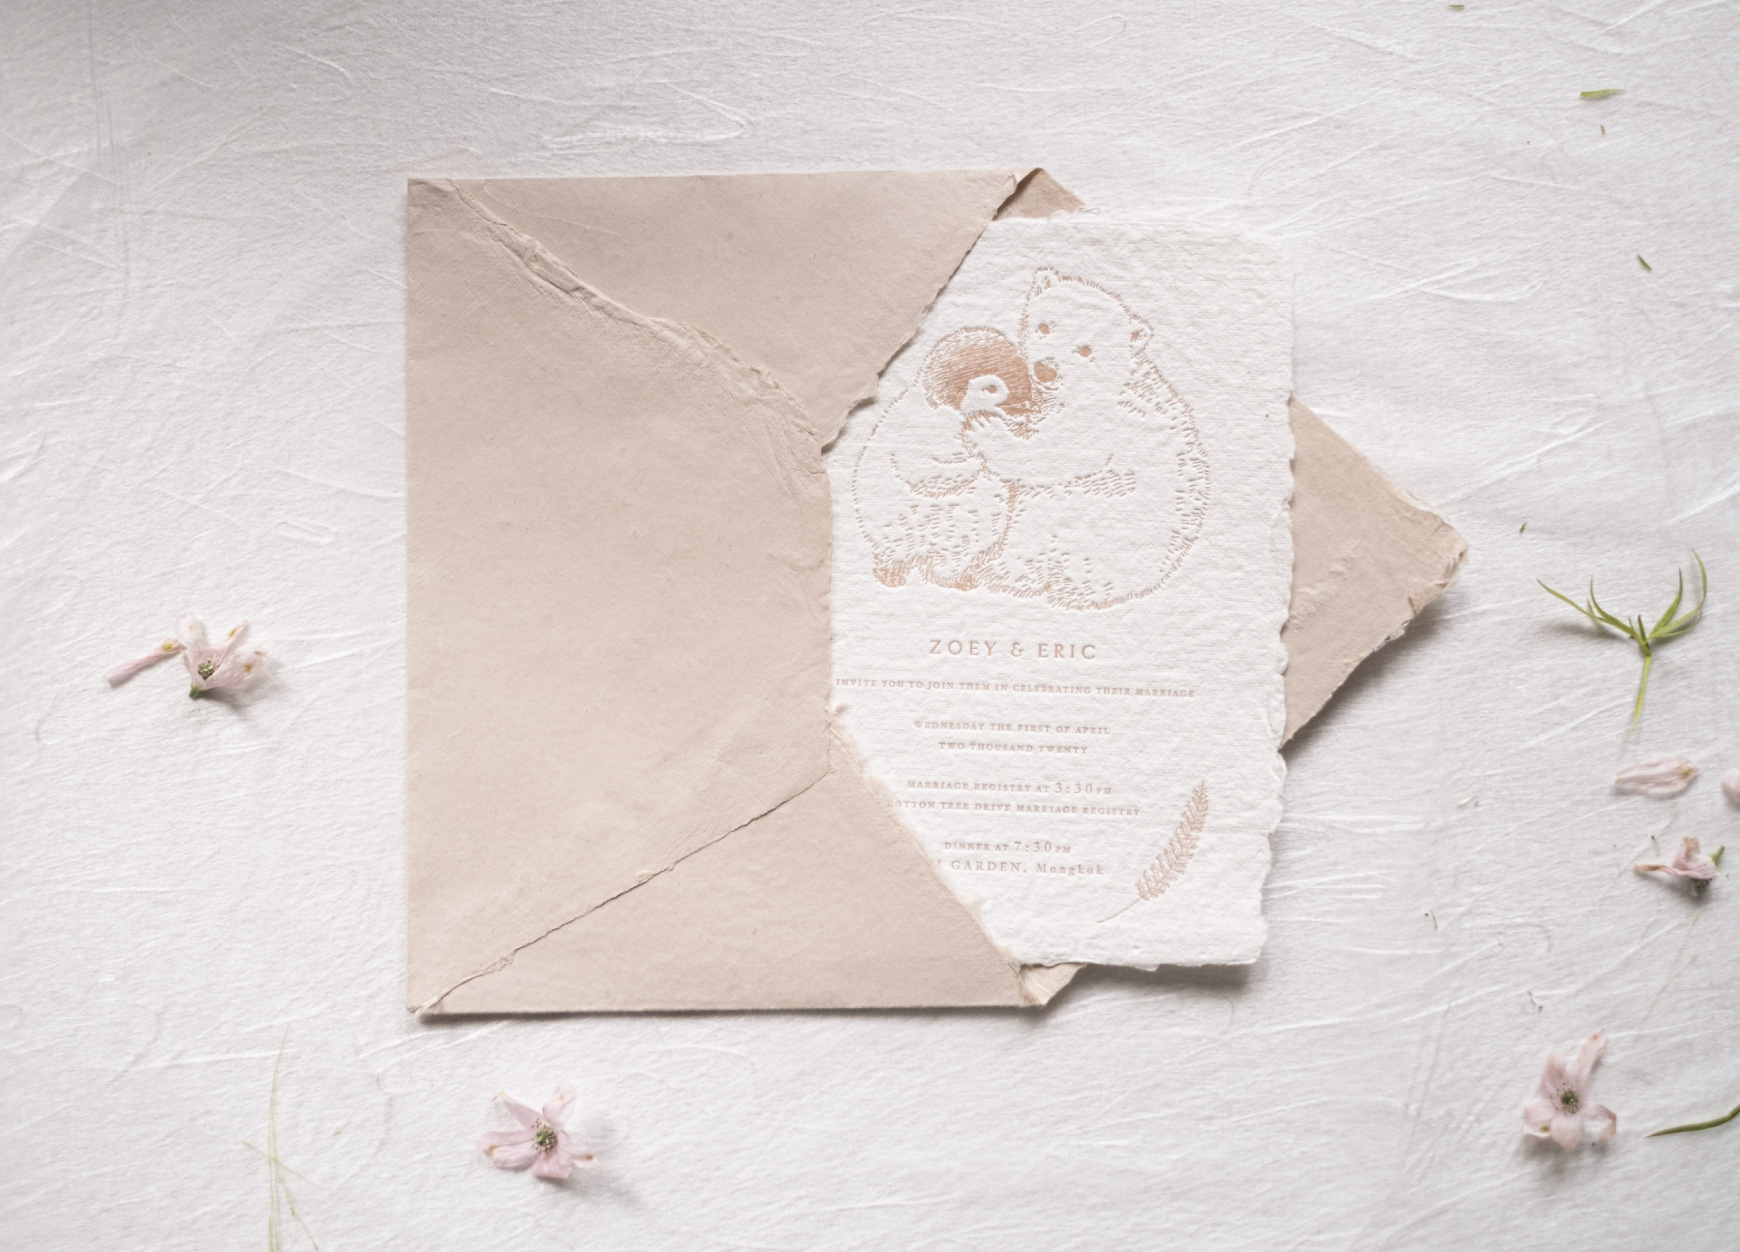 animal wedding invitation in letterpress in blush color with cotton rag paper envelope